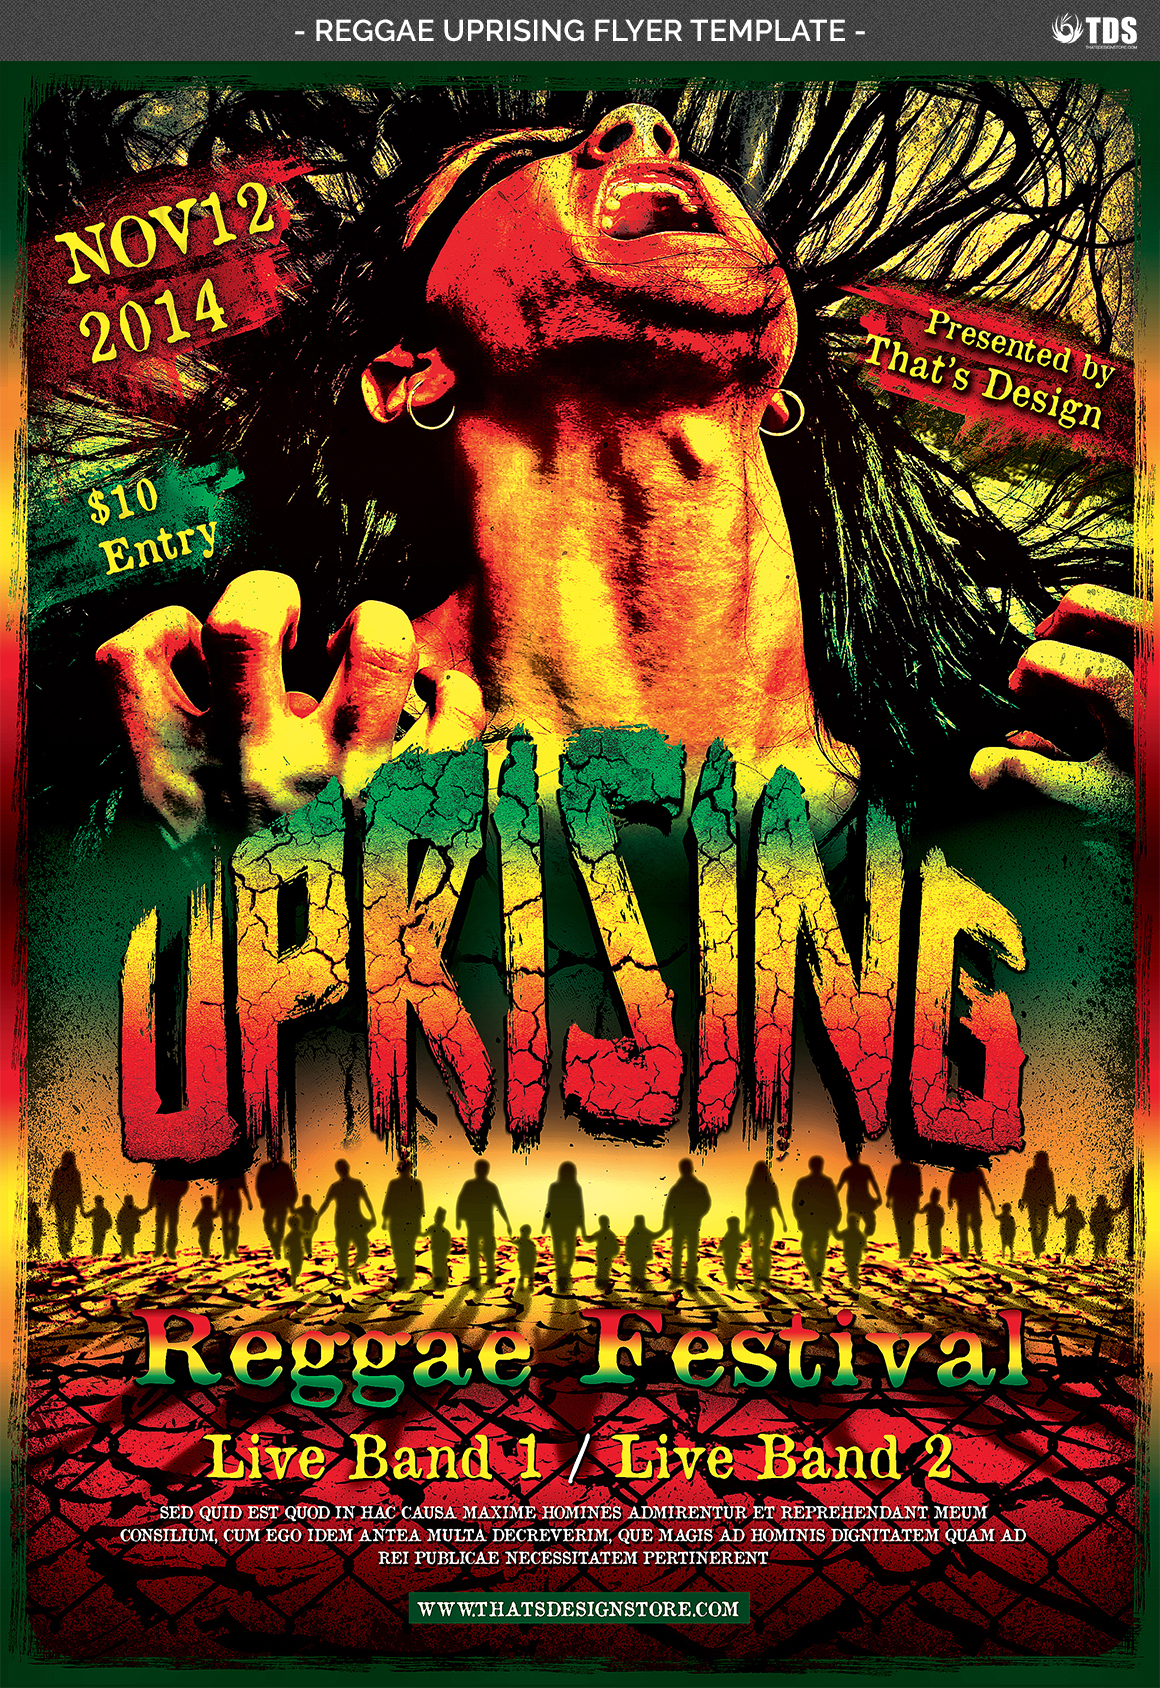 Reggae Uprising Flyer Template example image 4